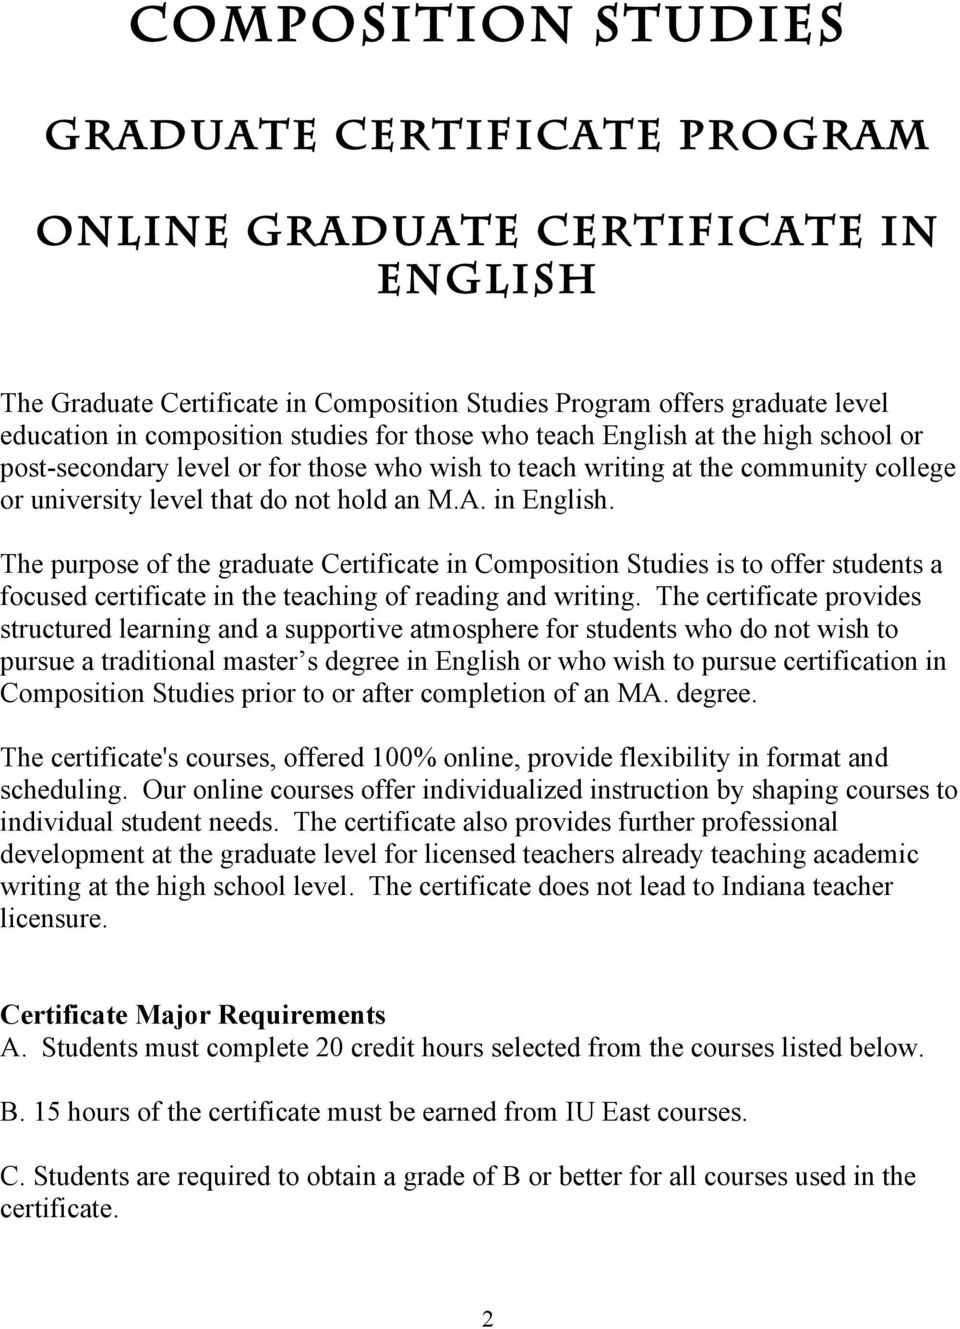 The purpose of the graduate Certificate in Composition Studies is to offer students a focused certificate in the teaching of reading and writing.